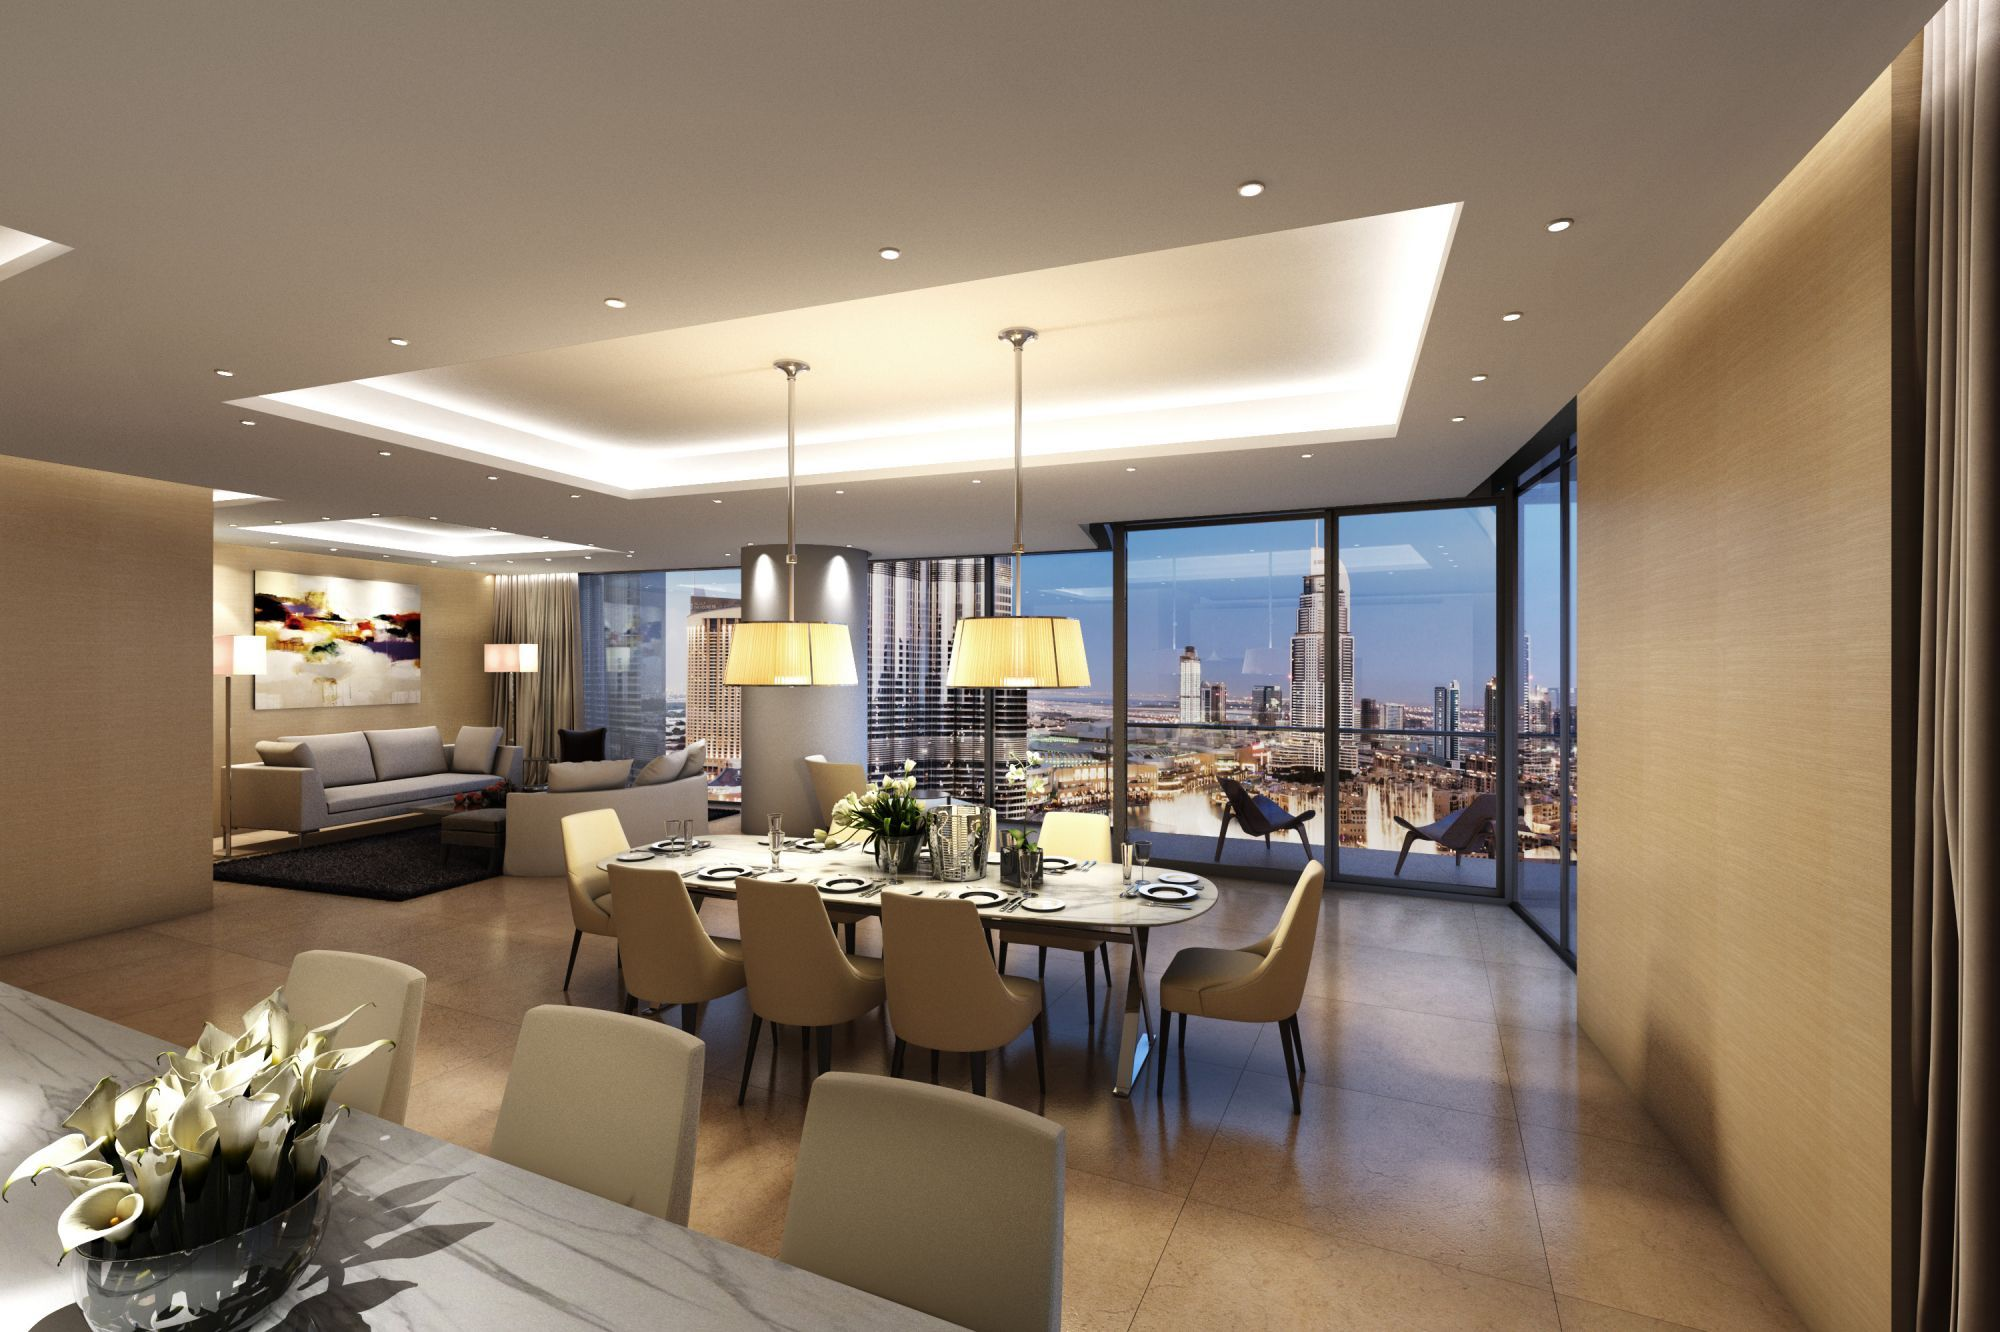 CGarchitect - Professional 3D Architectural Visualization User Community | Interior  Apartment Dubai. KPF architects